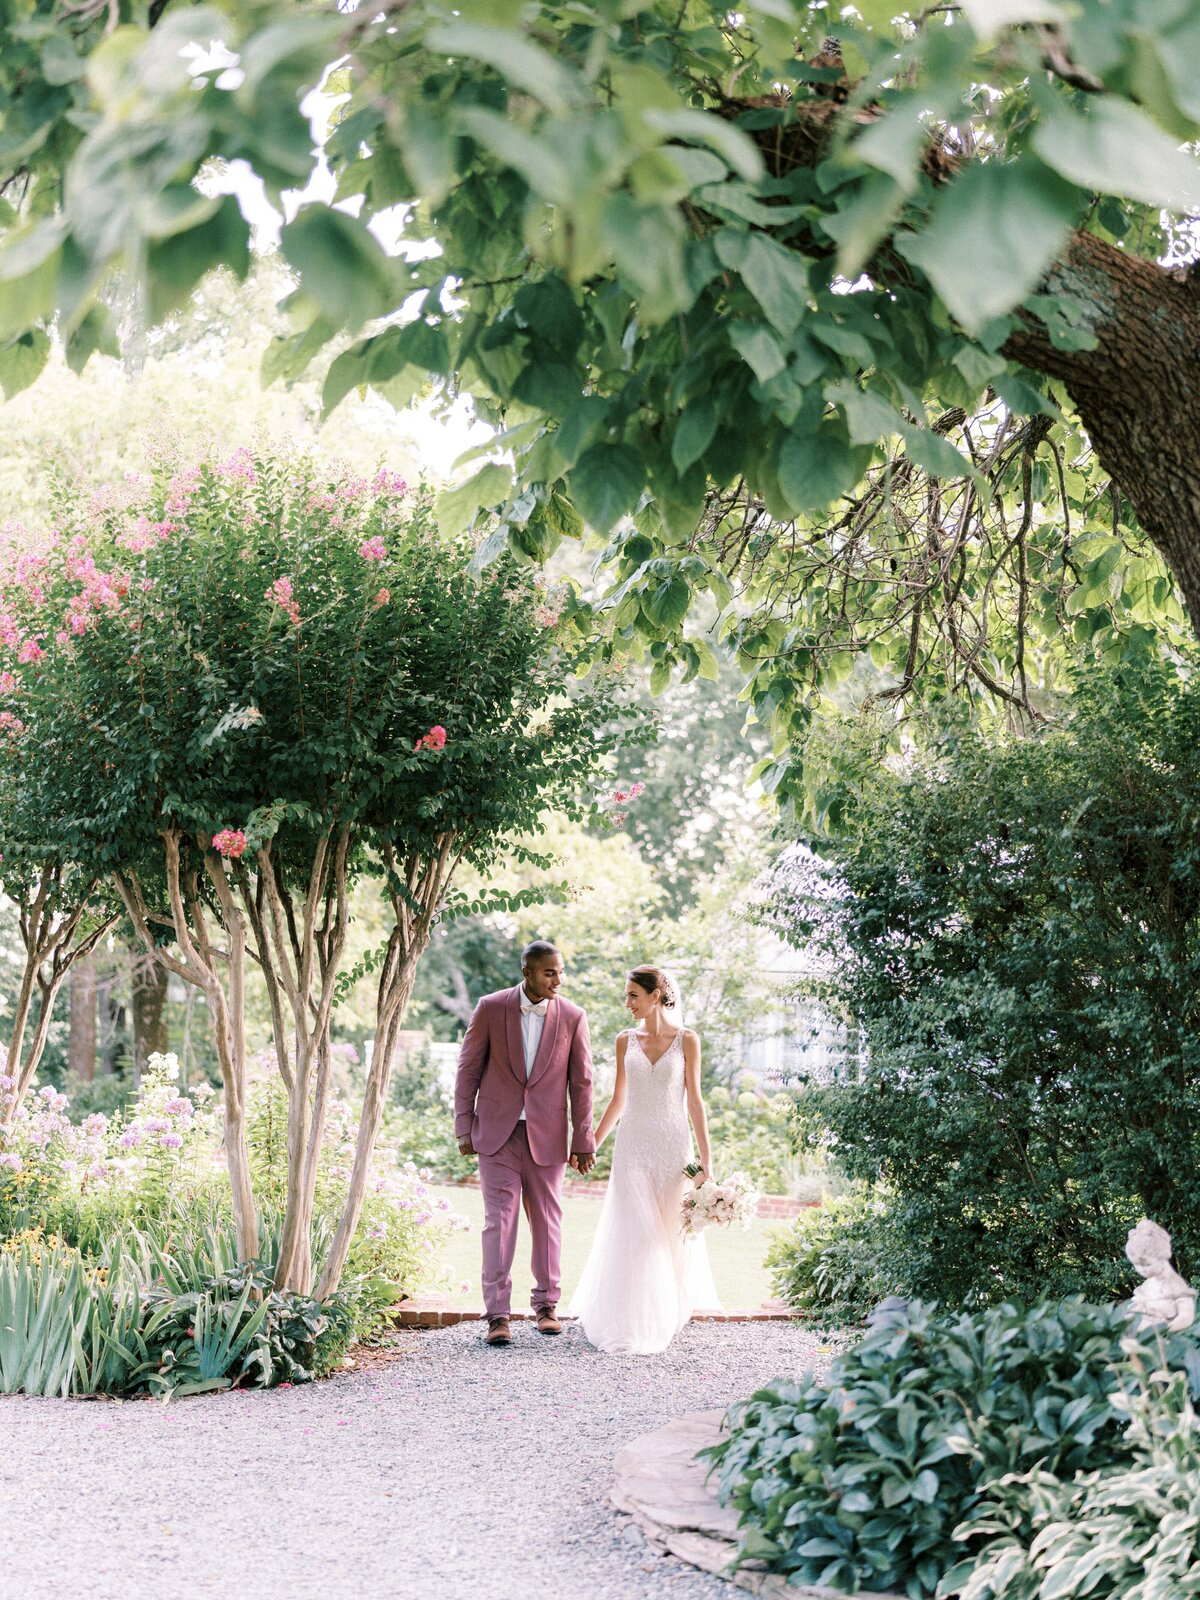 Bride and Groom pictures at The Clifton Inn Charlottesville Virginia Wedding Venue